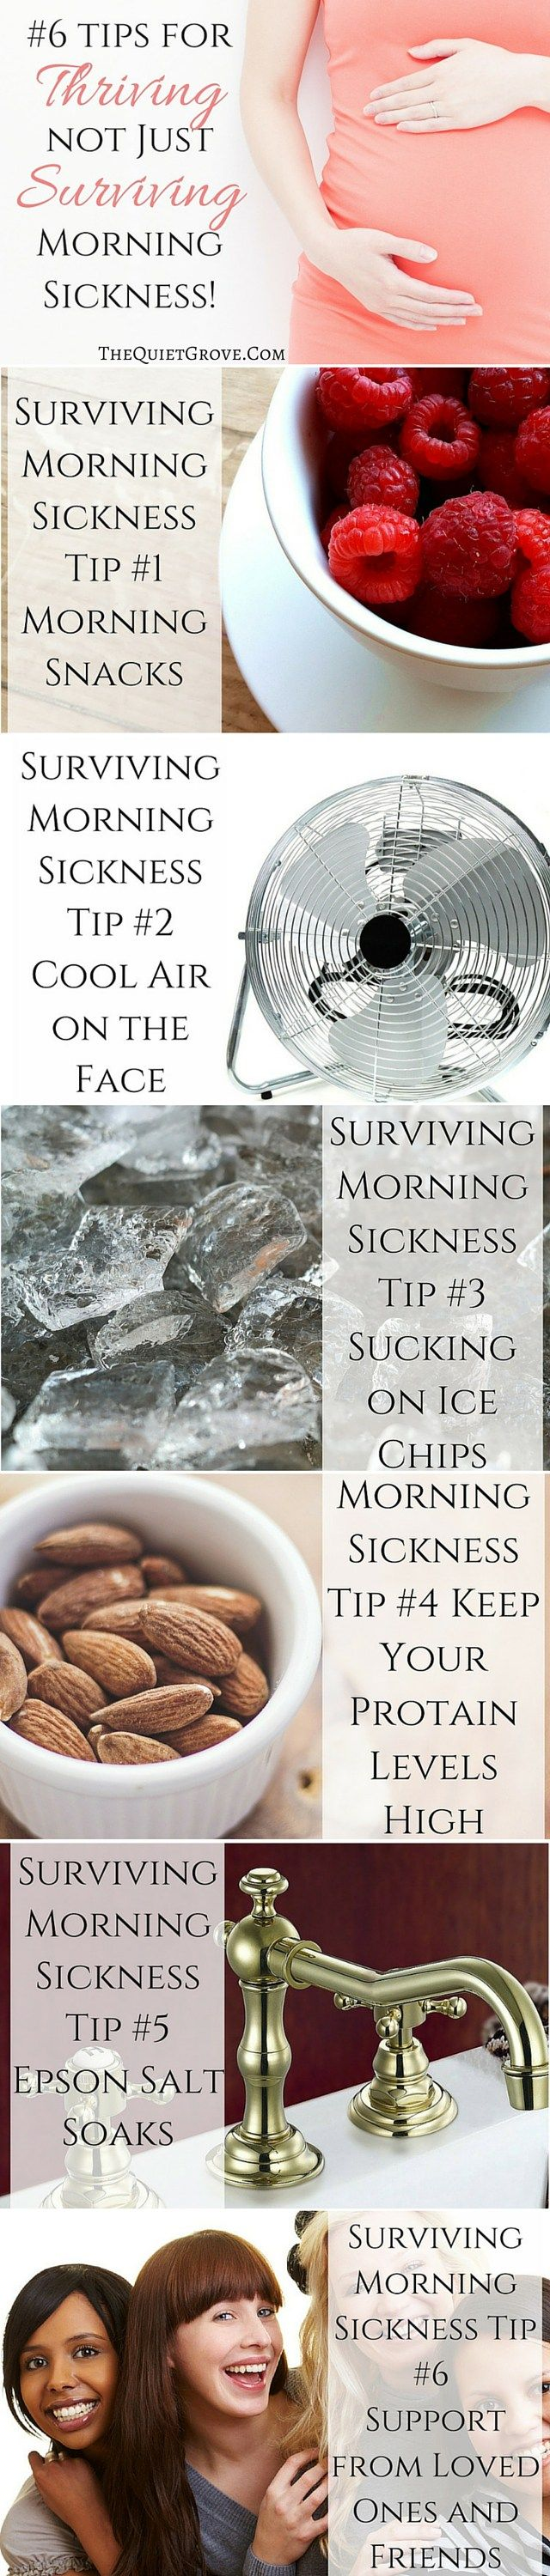 Pregnancy (especially morning sickness) can be extremely hard. The good news is that there are things you can do to help. Learn how to thrive not merely survive morningsickness with these 6 helpful tips by a mom who has been there.